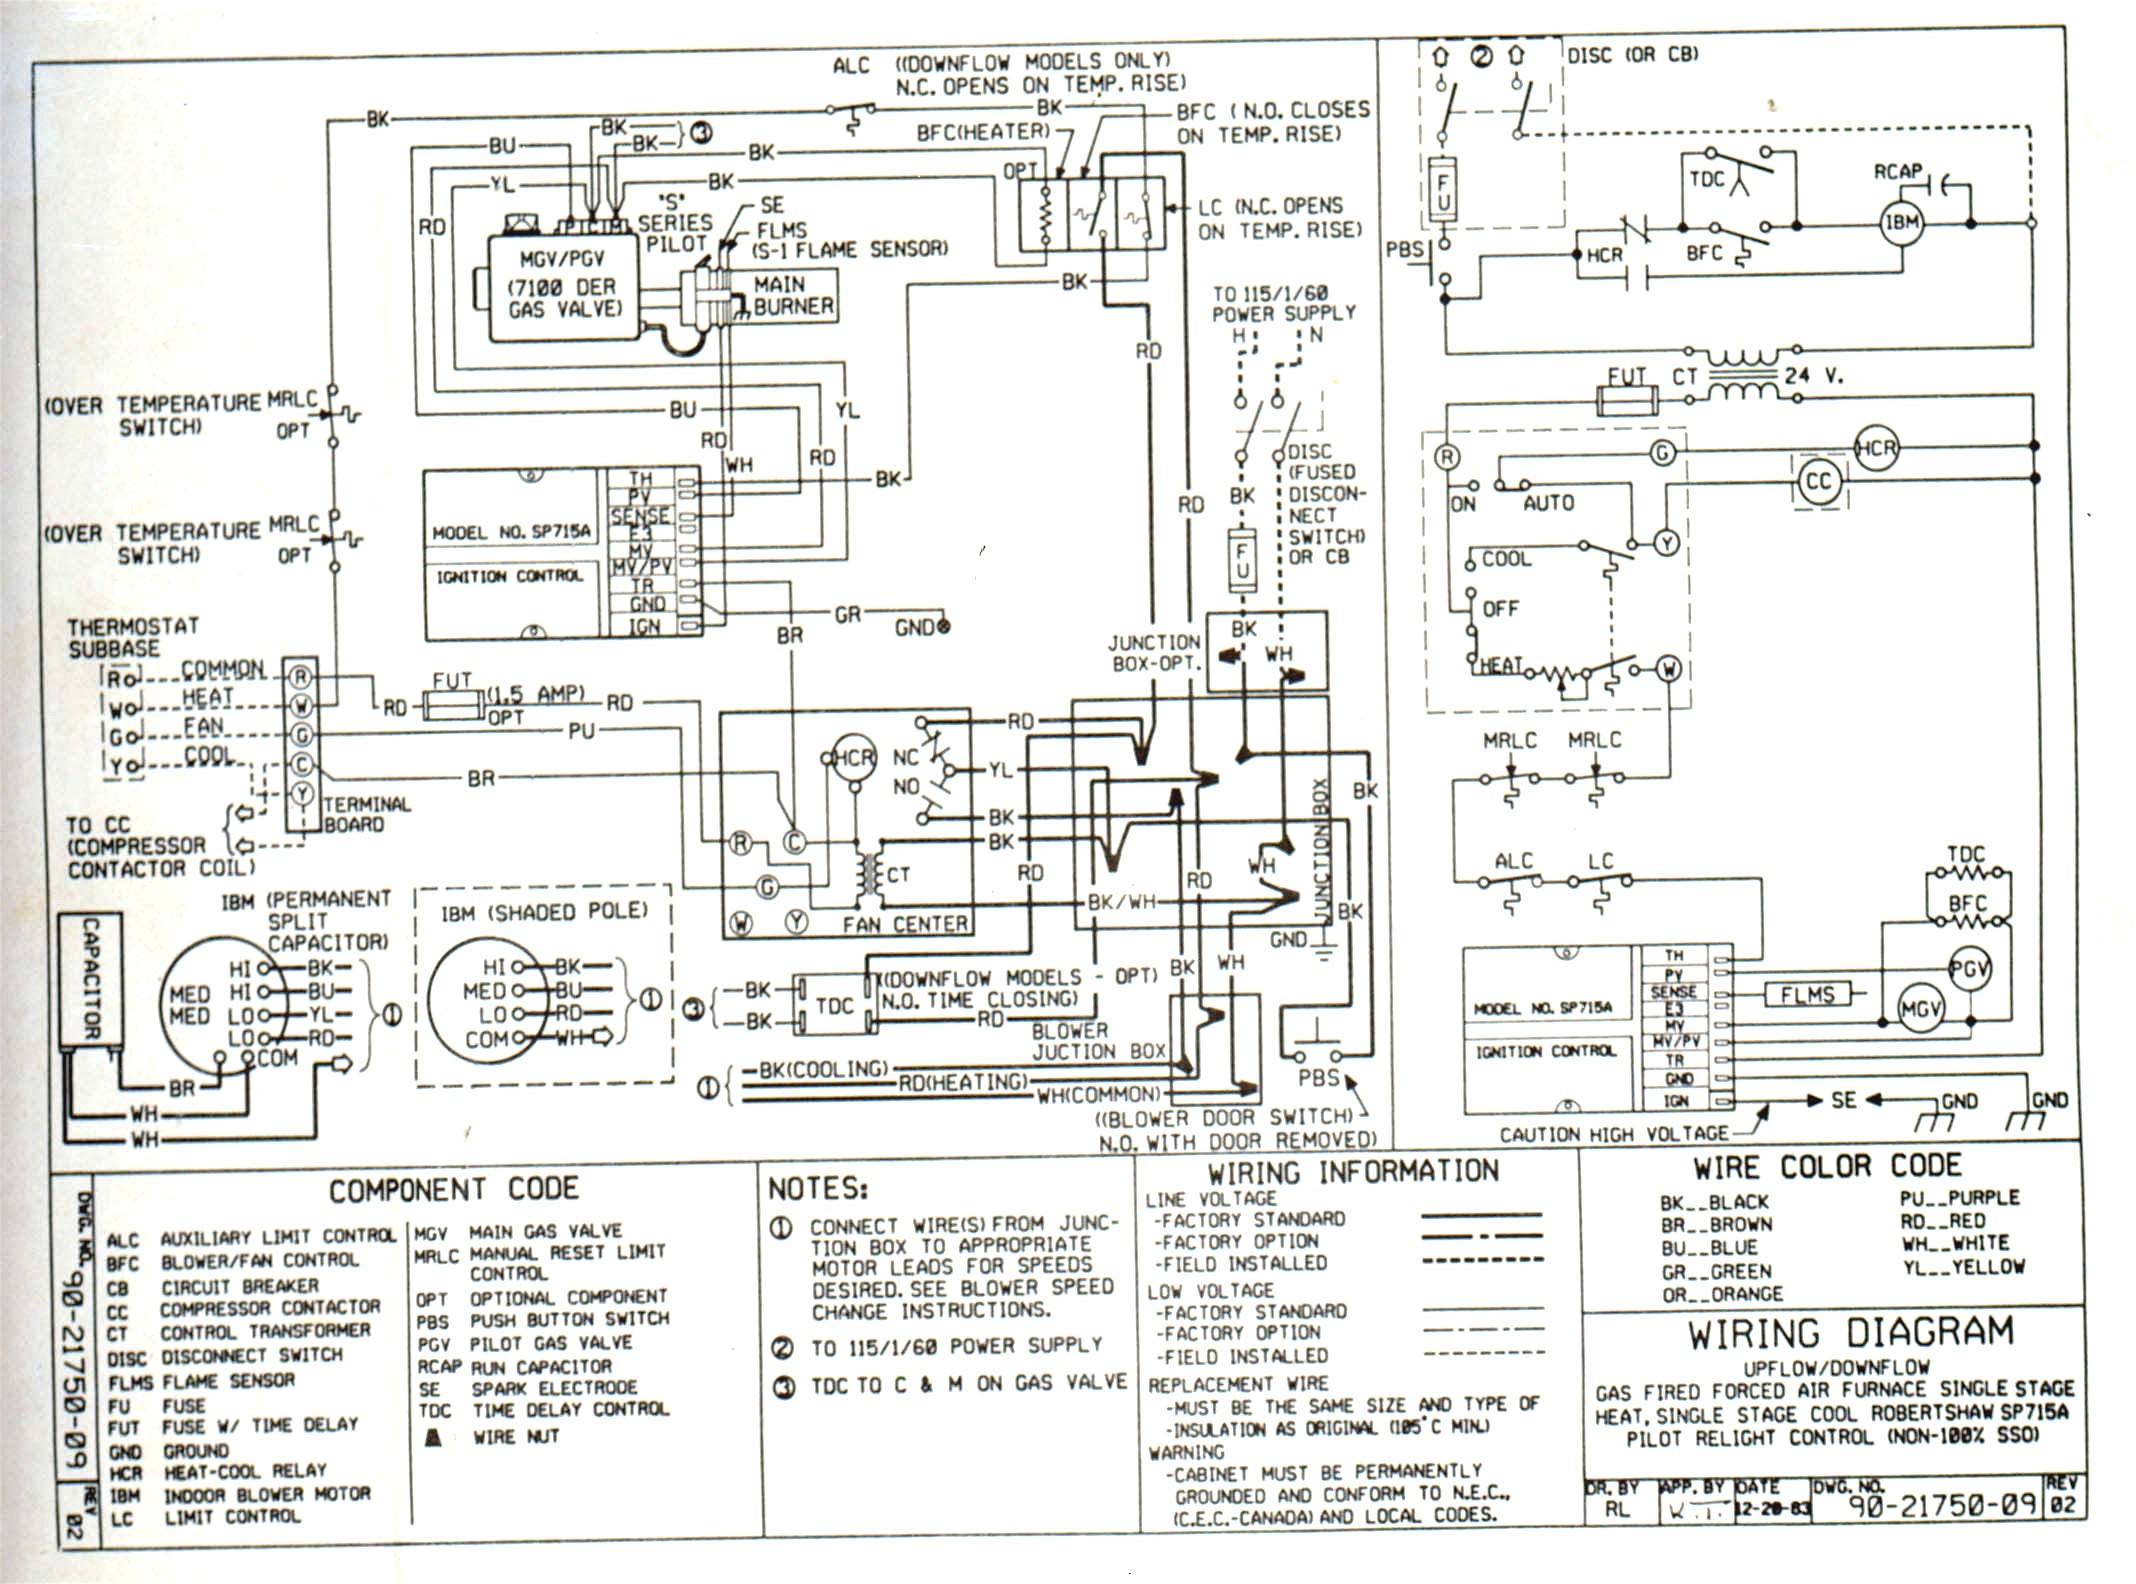 York Heat Pump Schematic Diagram on system wiring, central plant water source, system lennox, aaon air source, compressor relay, pool equipment, fluid cooler, reversing valve,